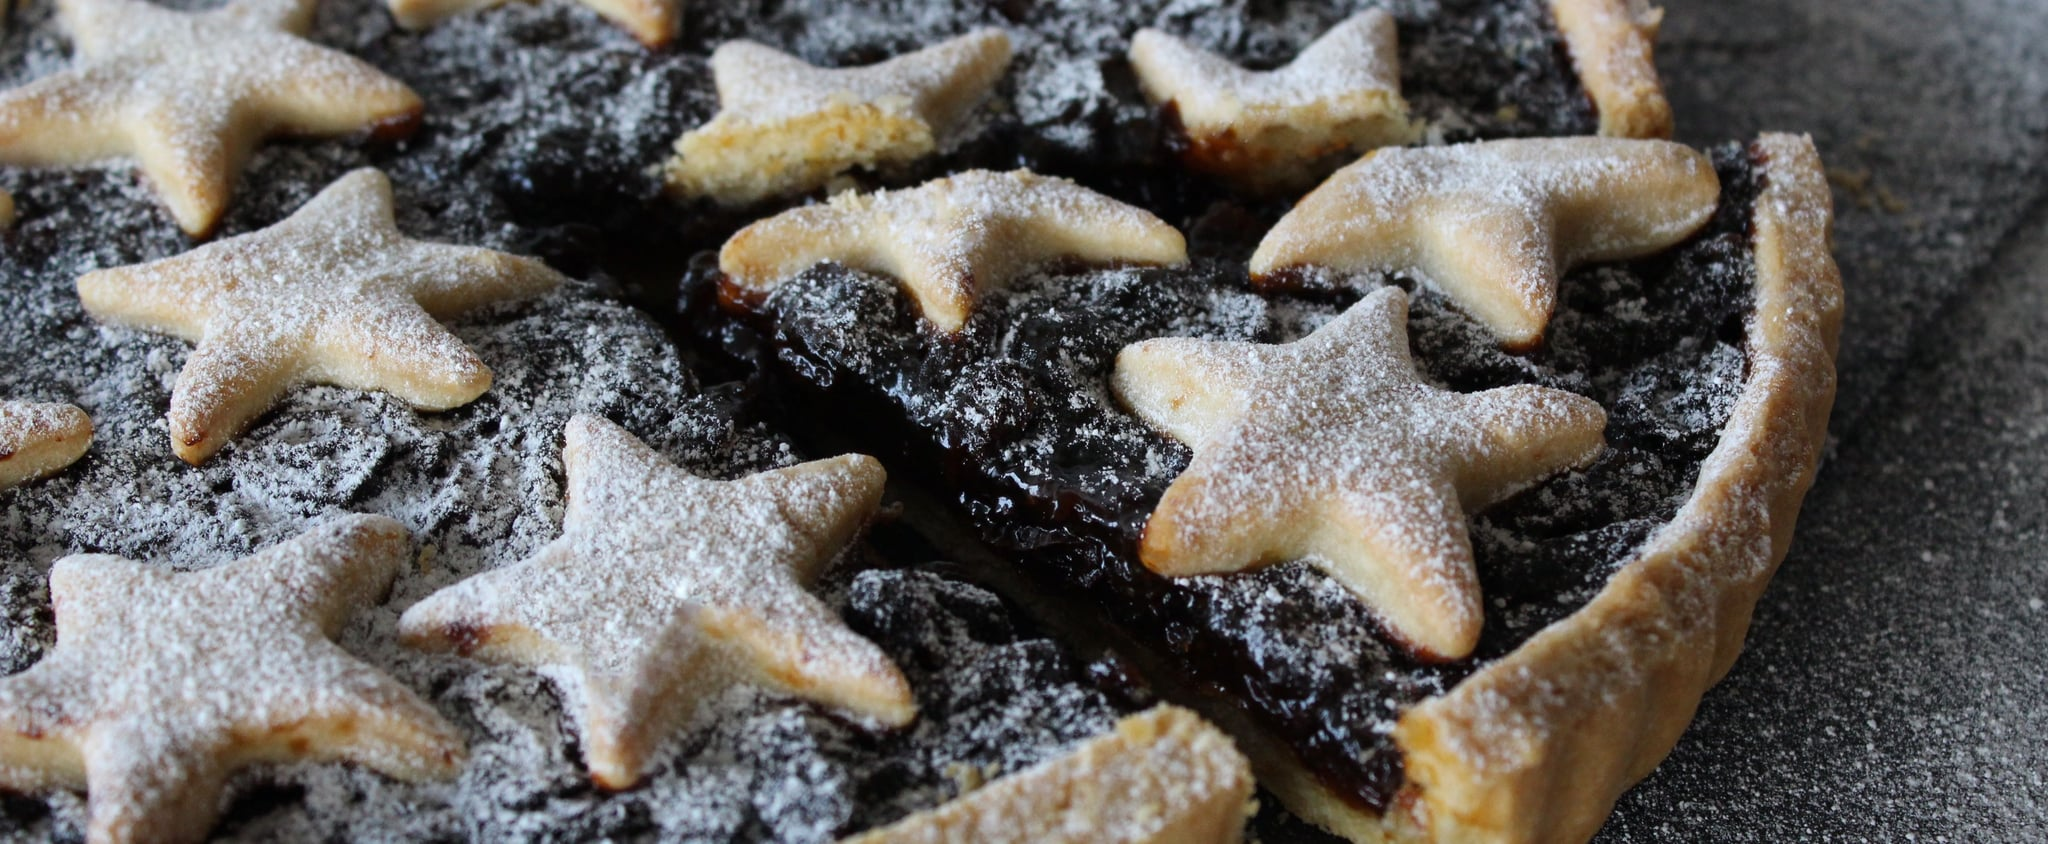 7 Vegan Mince Pie Recipes You Won't Believe Are Dairy-Free